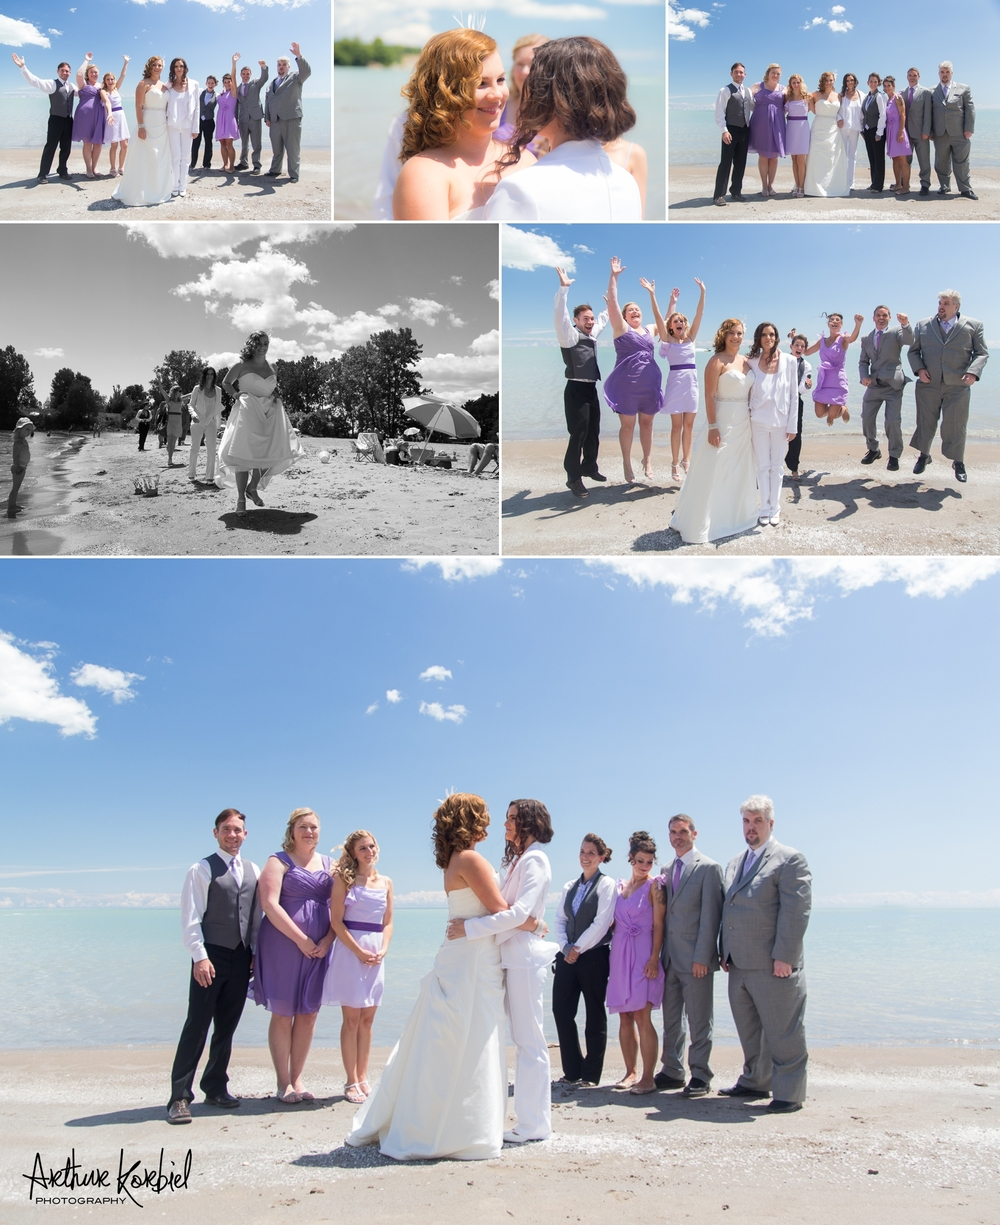 Same-Sex Wedding - Kettle Creek Golf Club - Port Stanley Beach - Arthur Korbiel Photography - London Wedding Photographer_004.jpg